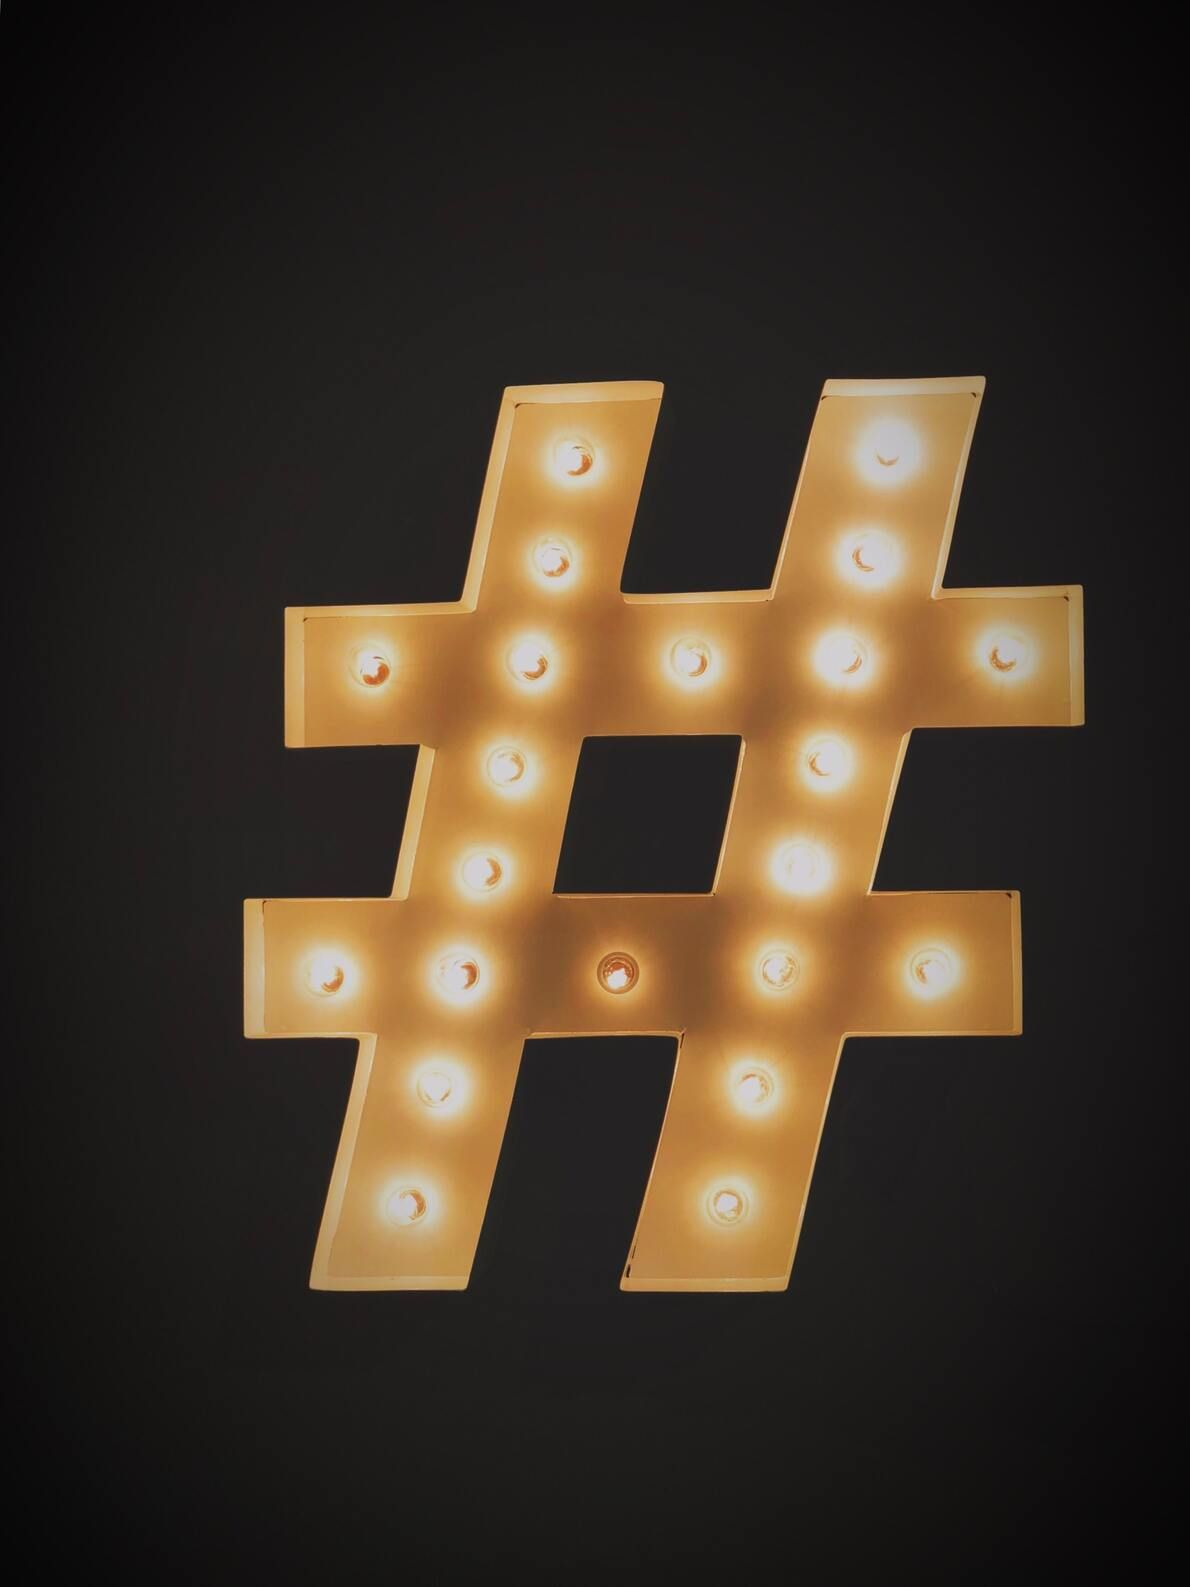 Social media accounts and the use of hashtags are a great way to market your freelance business